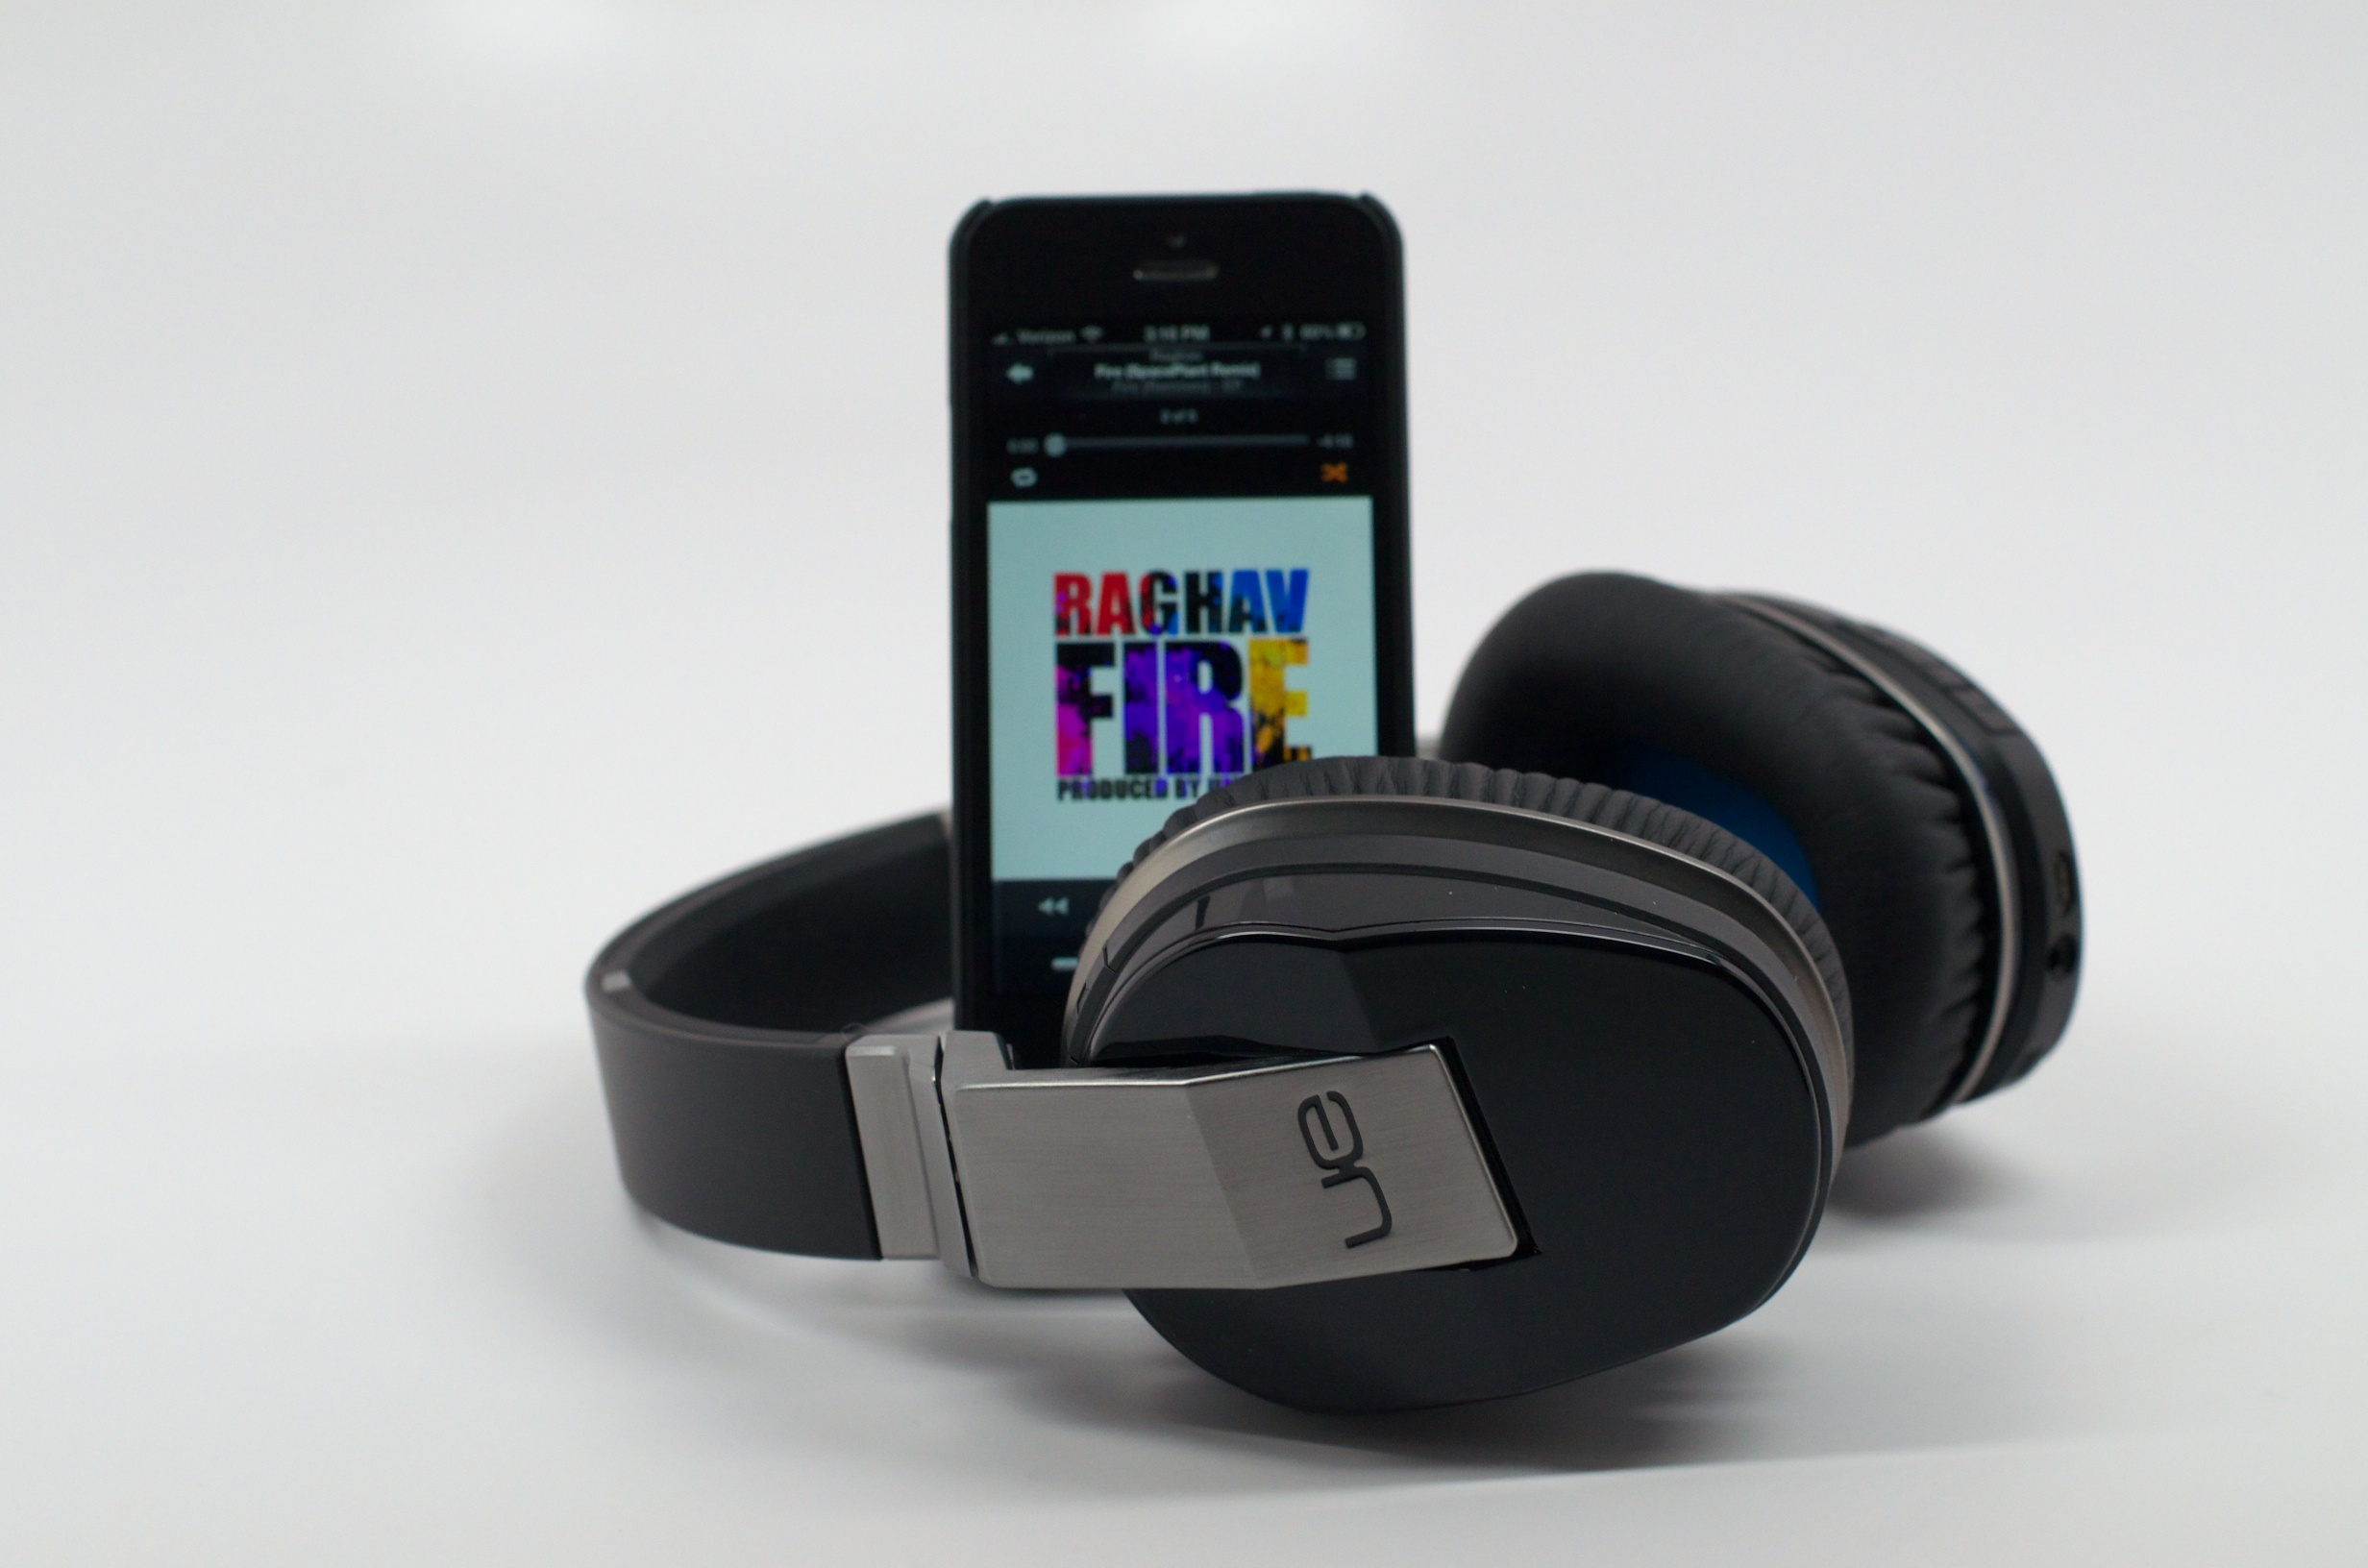 iOS 8 could bring better sounding music with high-resolution audio on the iPhone.